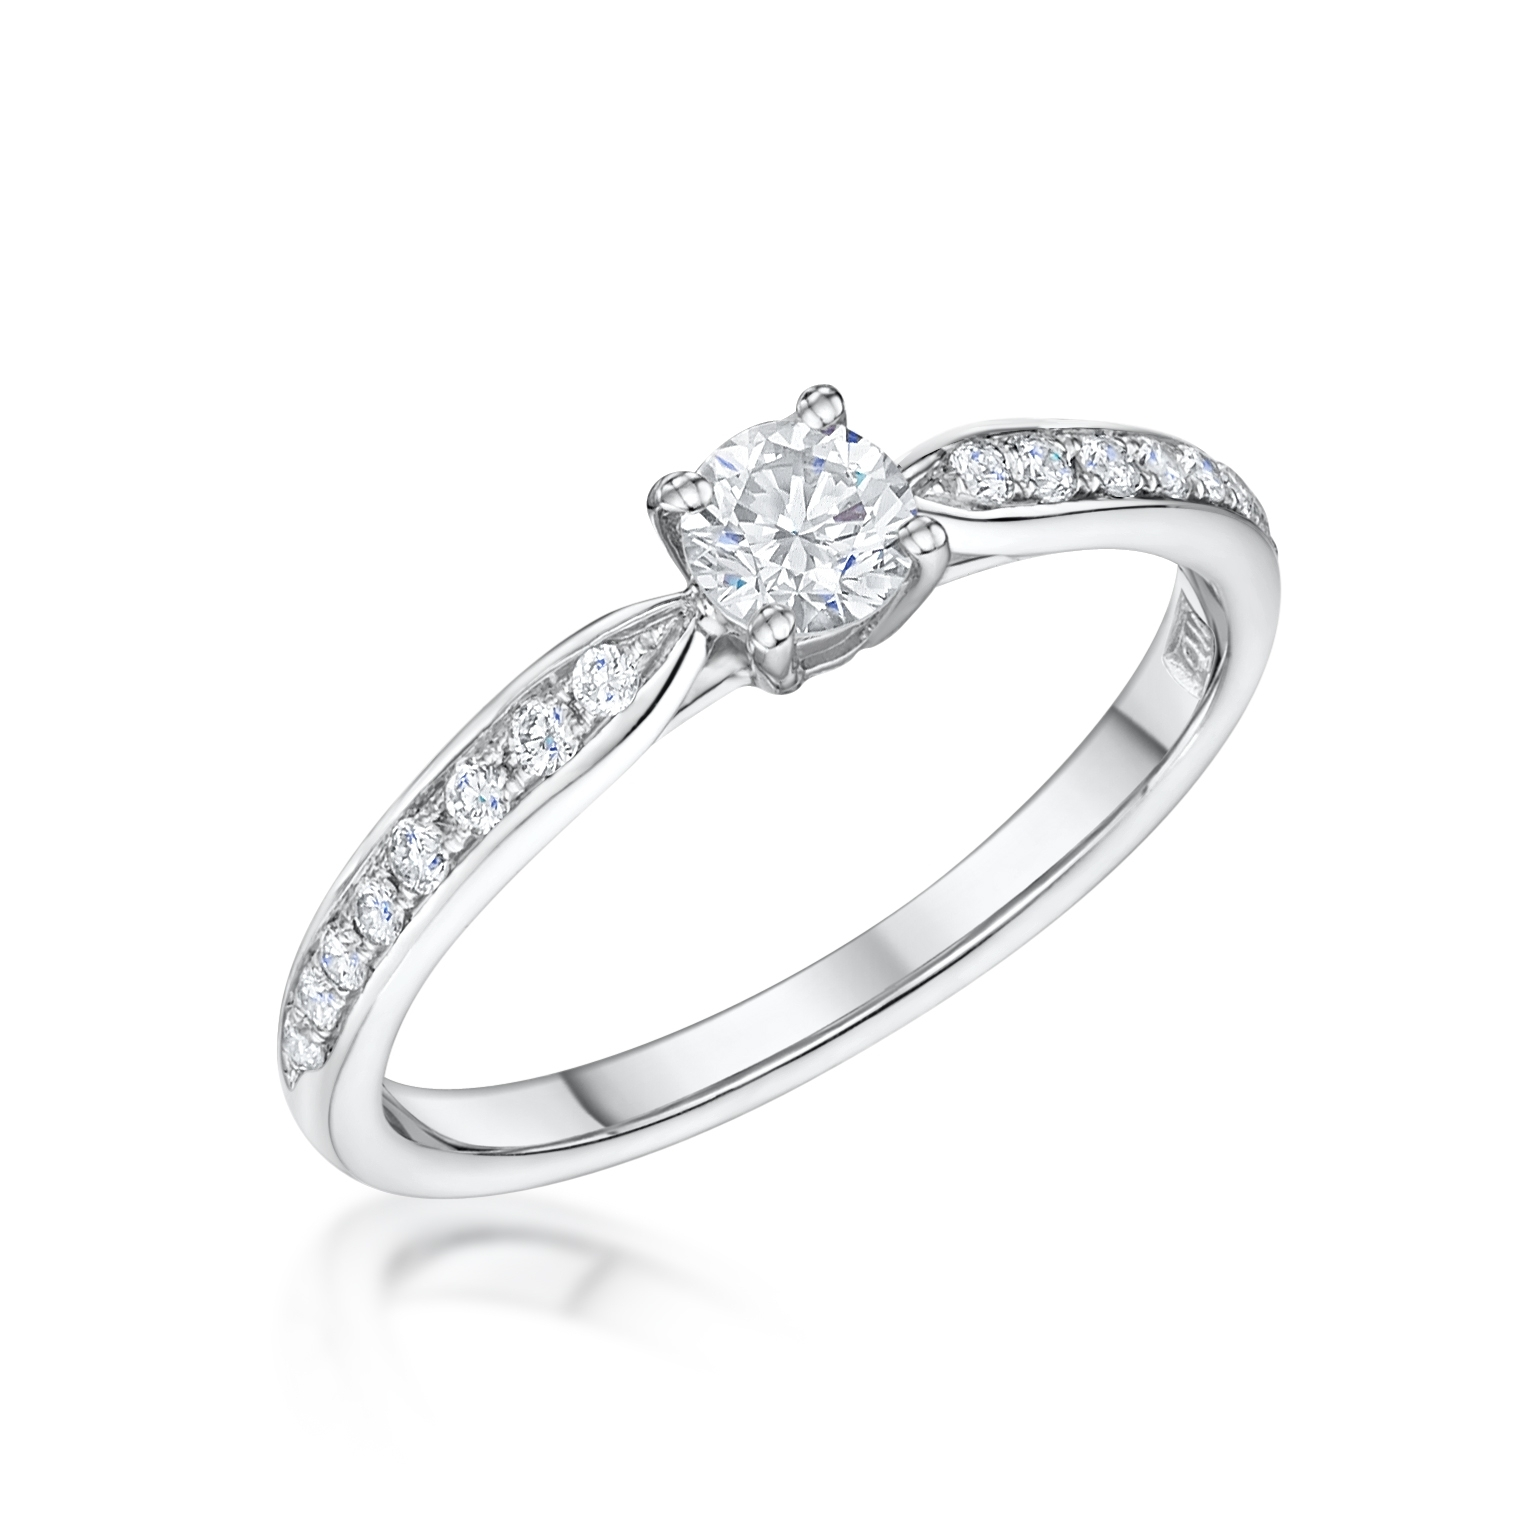 Tapered Diamond Solitaire With Pave Shoulders With Regard To Newest Diamond Tapered Wedding Bands (View 11 of 15)